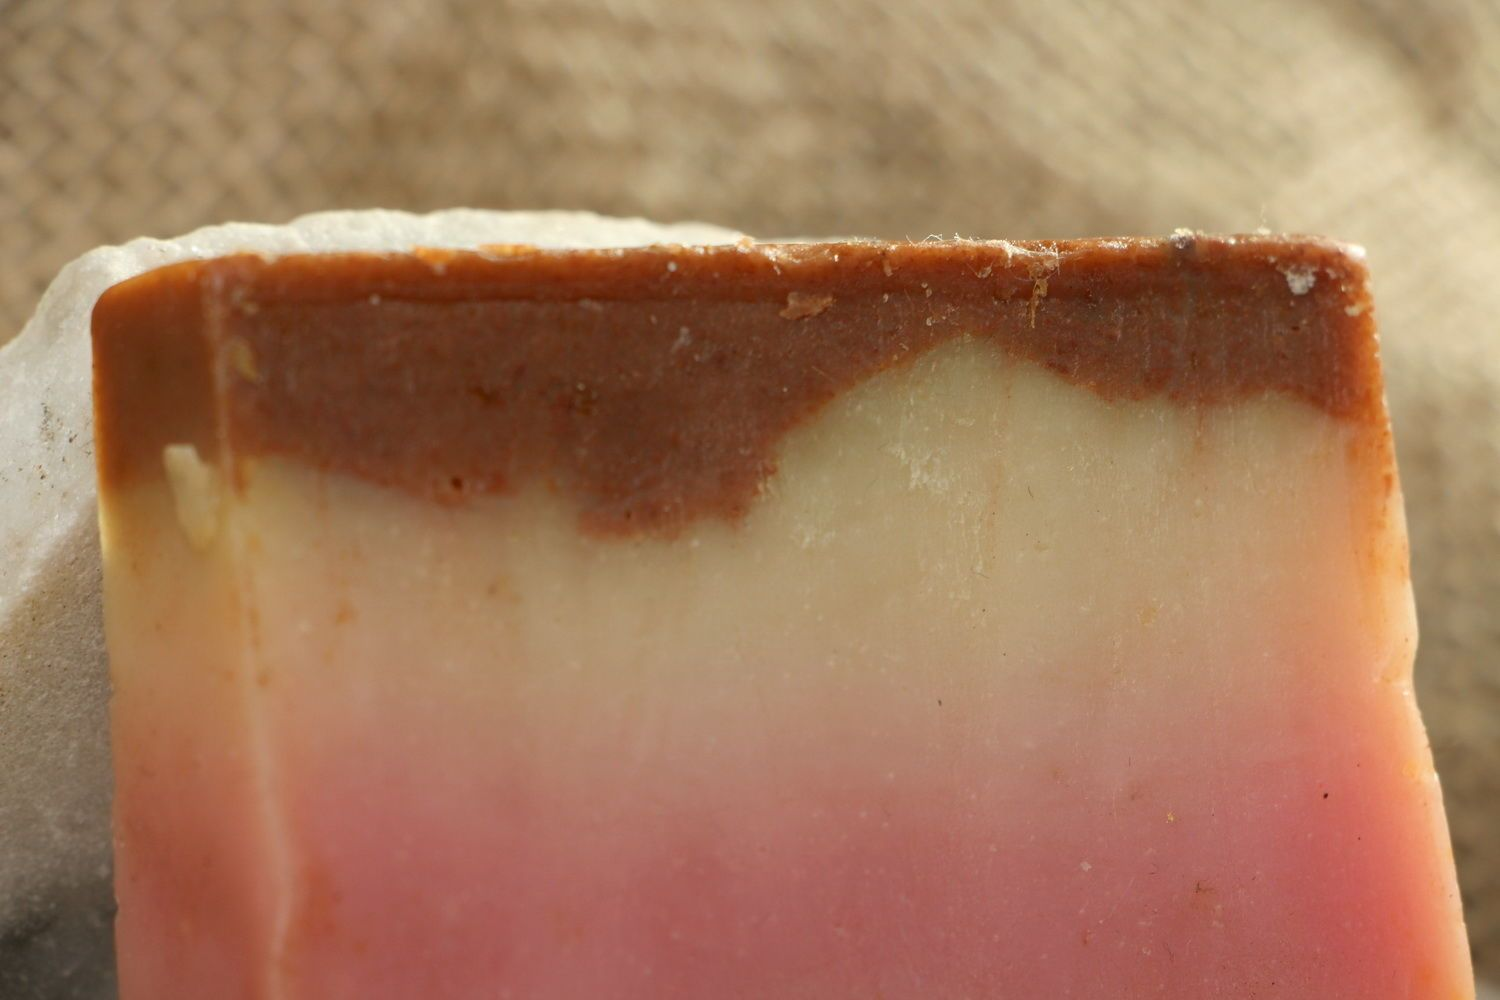 Handmade soap with a pink clay photo 4